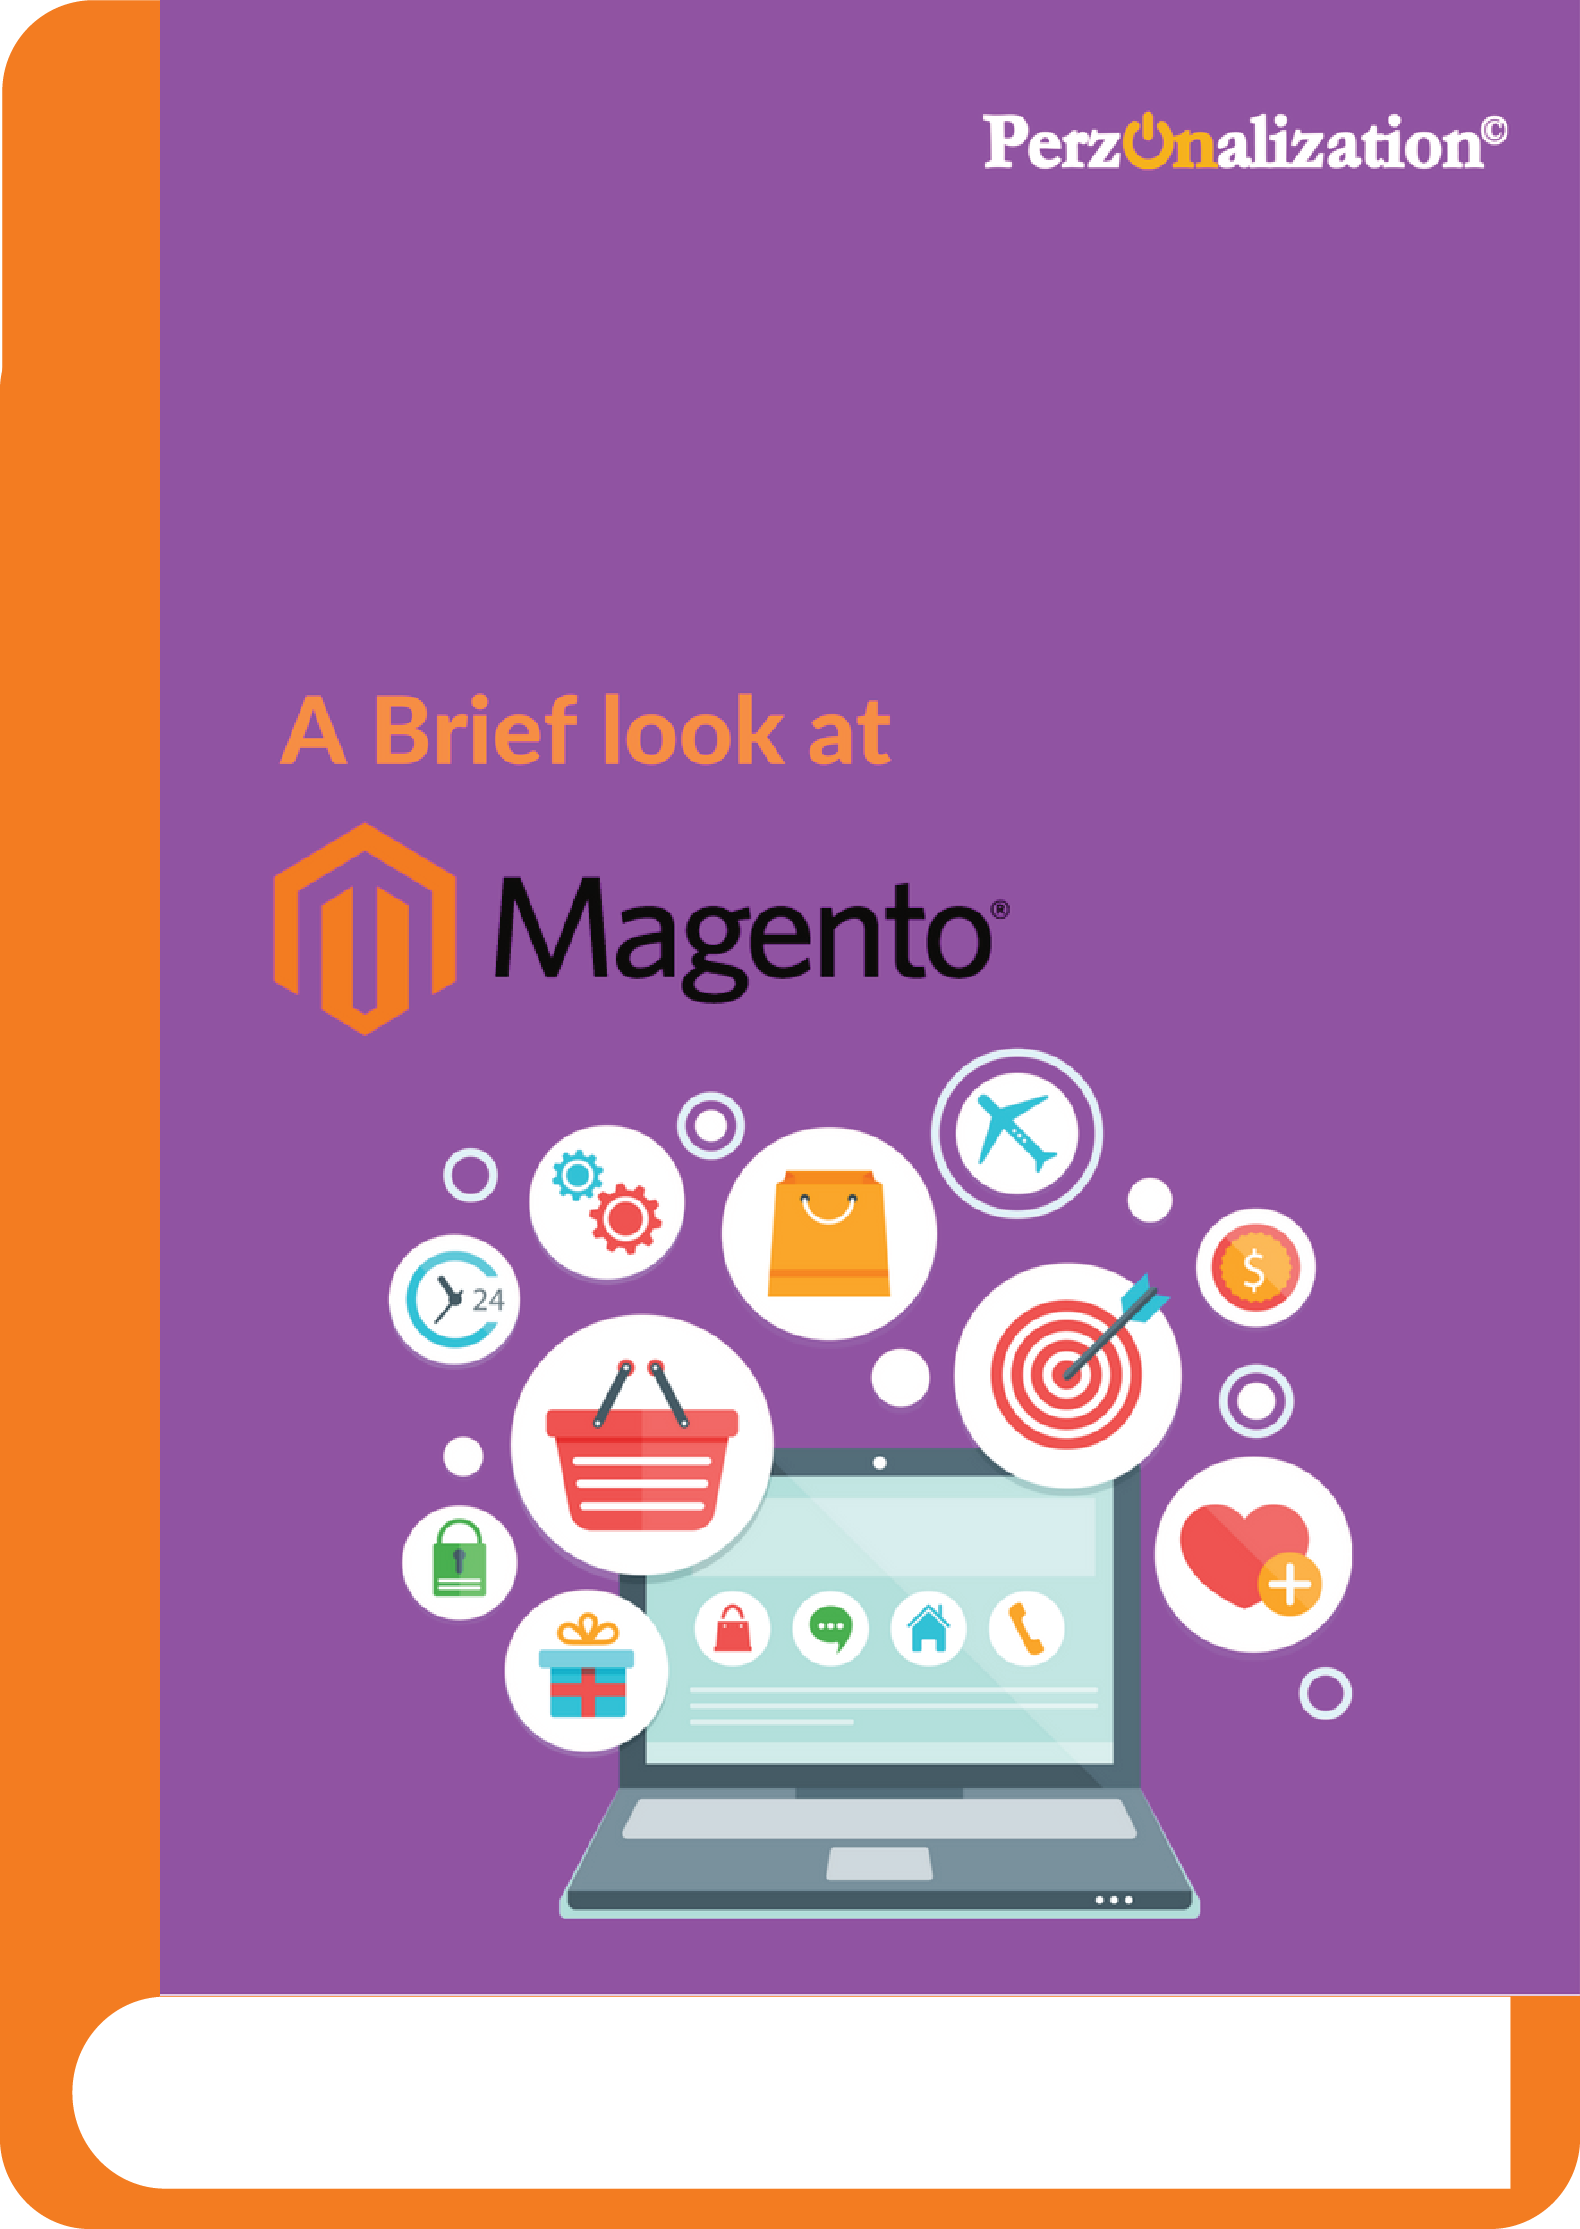 Magento is the most used and well-known AeCommerce platform among SMBs. It also adds value via extensions that go a long way in enriching the experience.